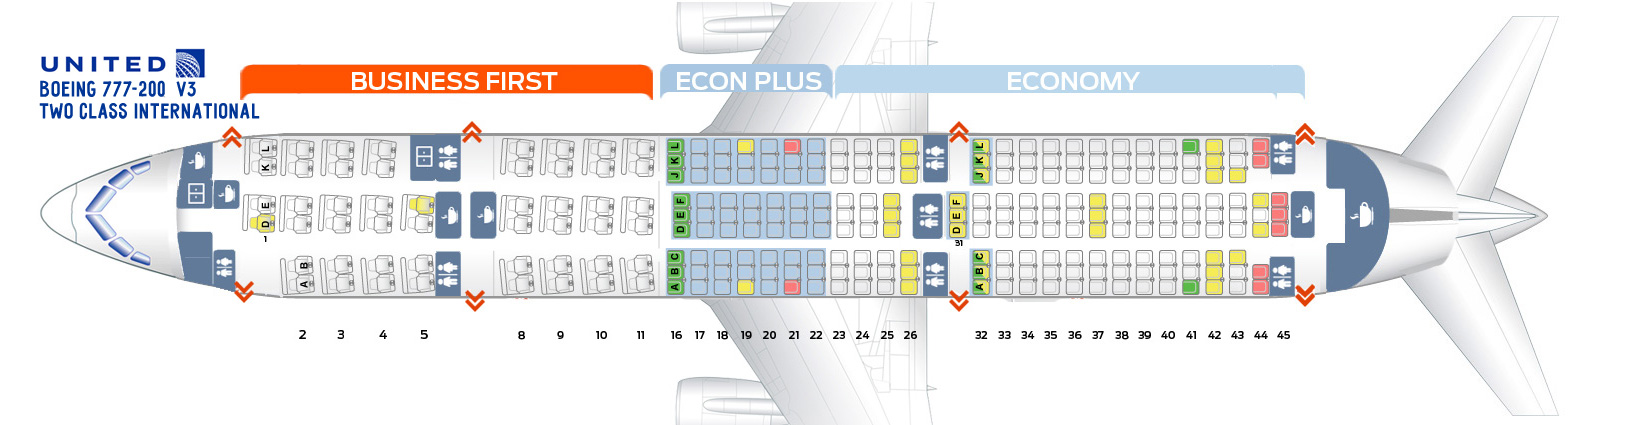 Seat_map_United_Airlines_Boeing_777_200_Two_Class_International_v3